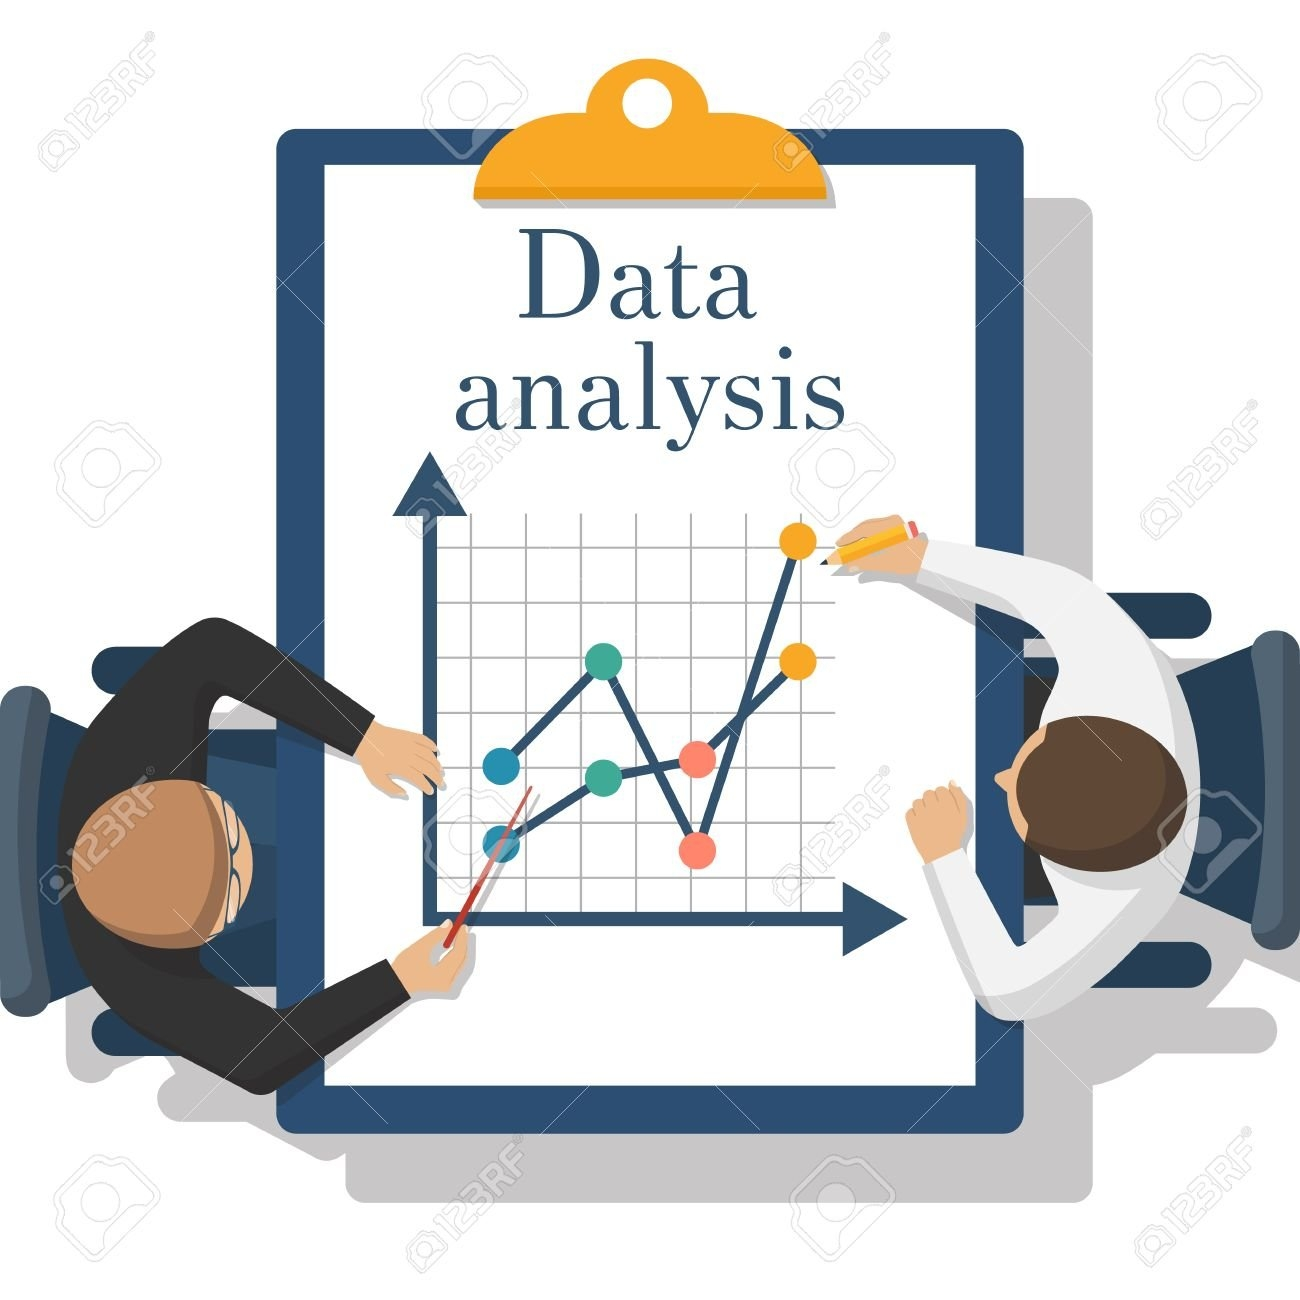 Data Analysis Clipart.